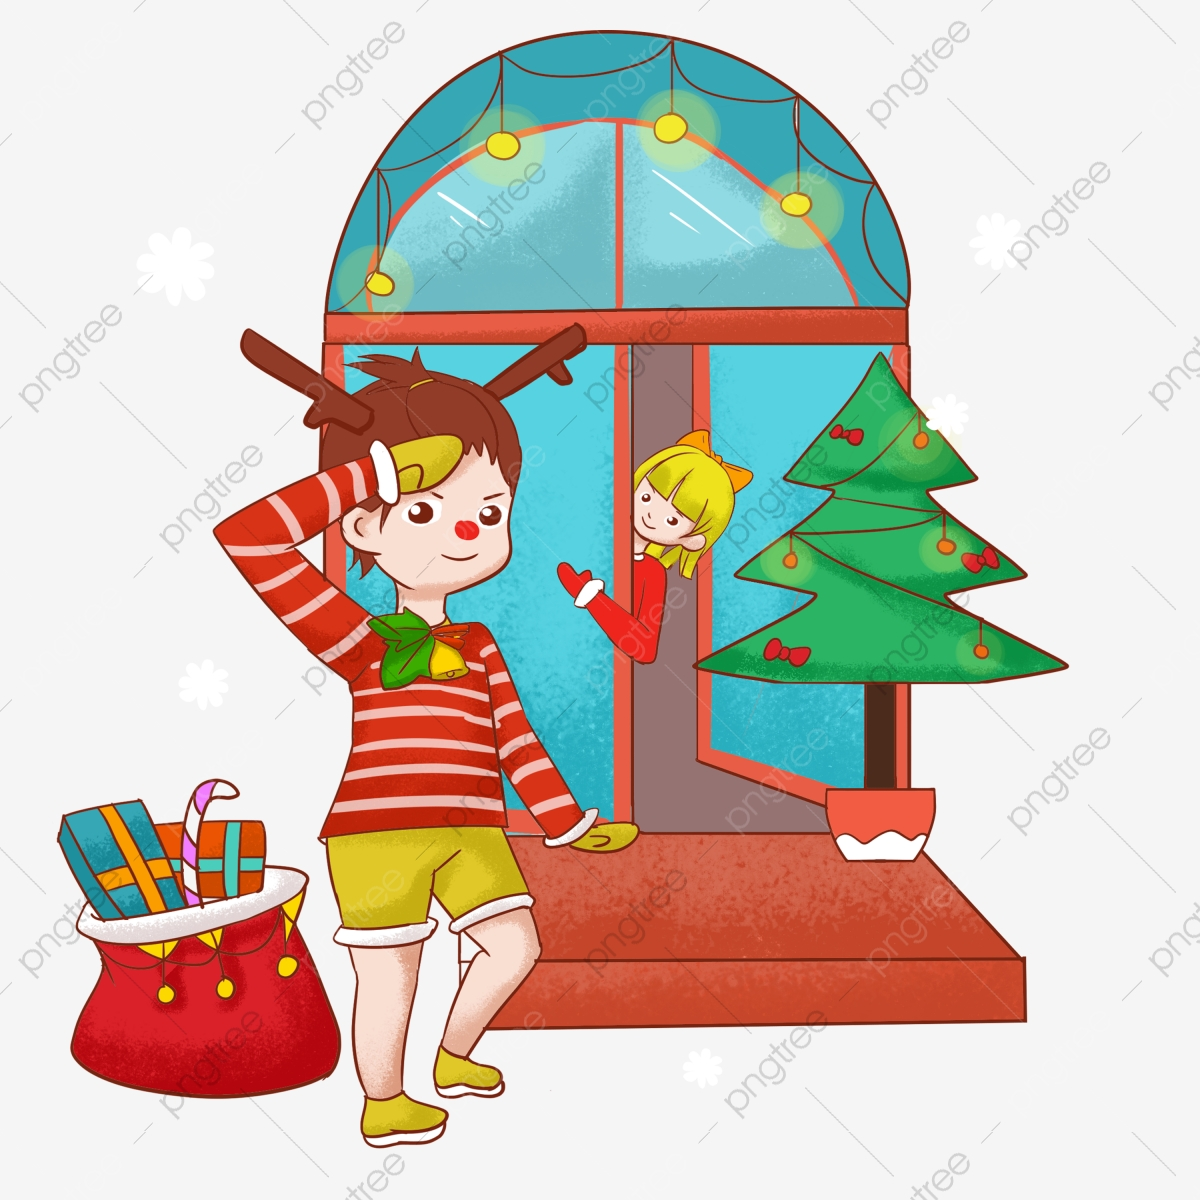 Christmas Giving Clipart.Christmas Elk Little Boy Christmas Gifts Merry Christmas